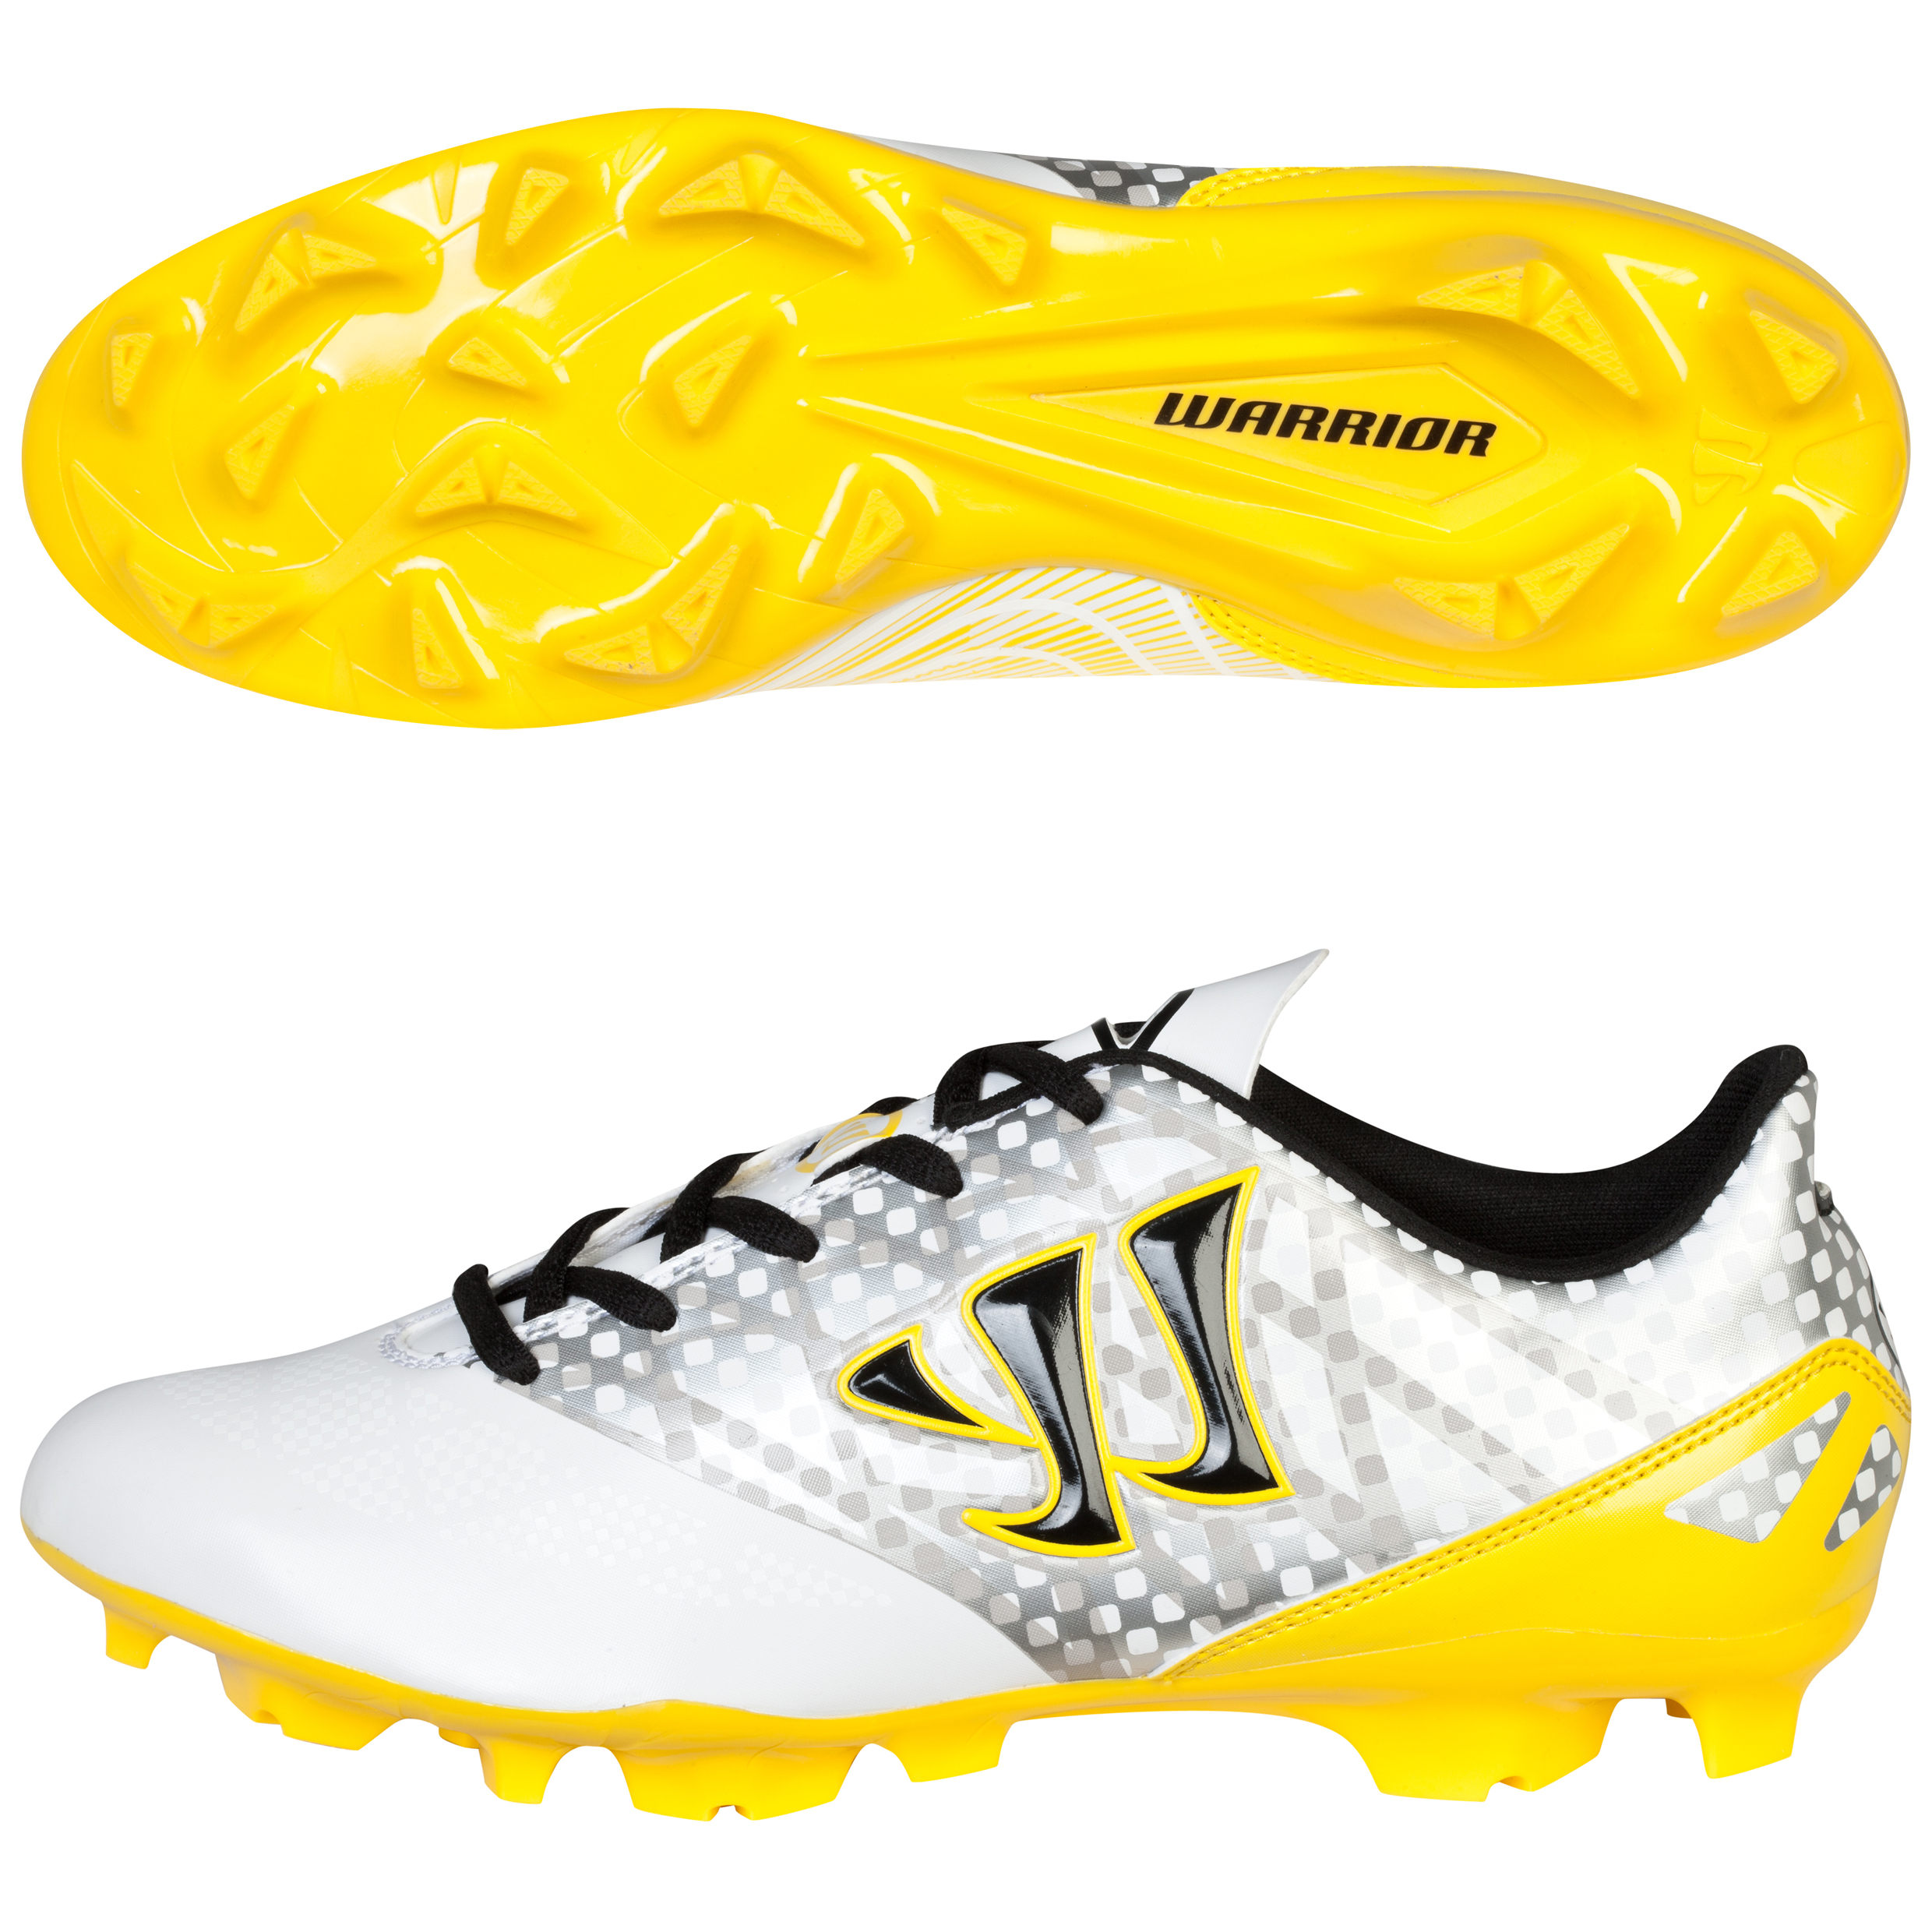 Warrior Gambler Combat Firm Ground Football Boots White